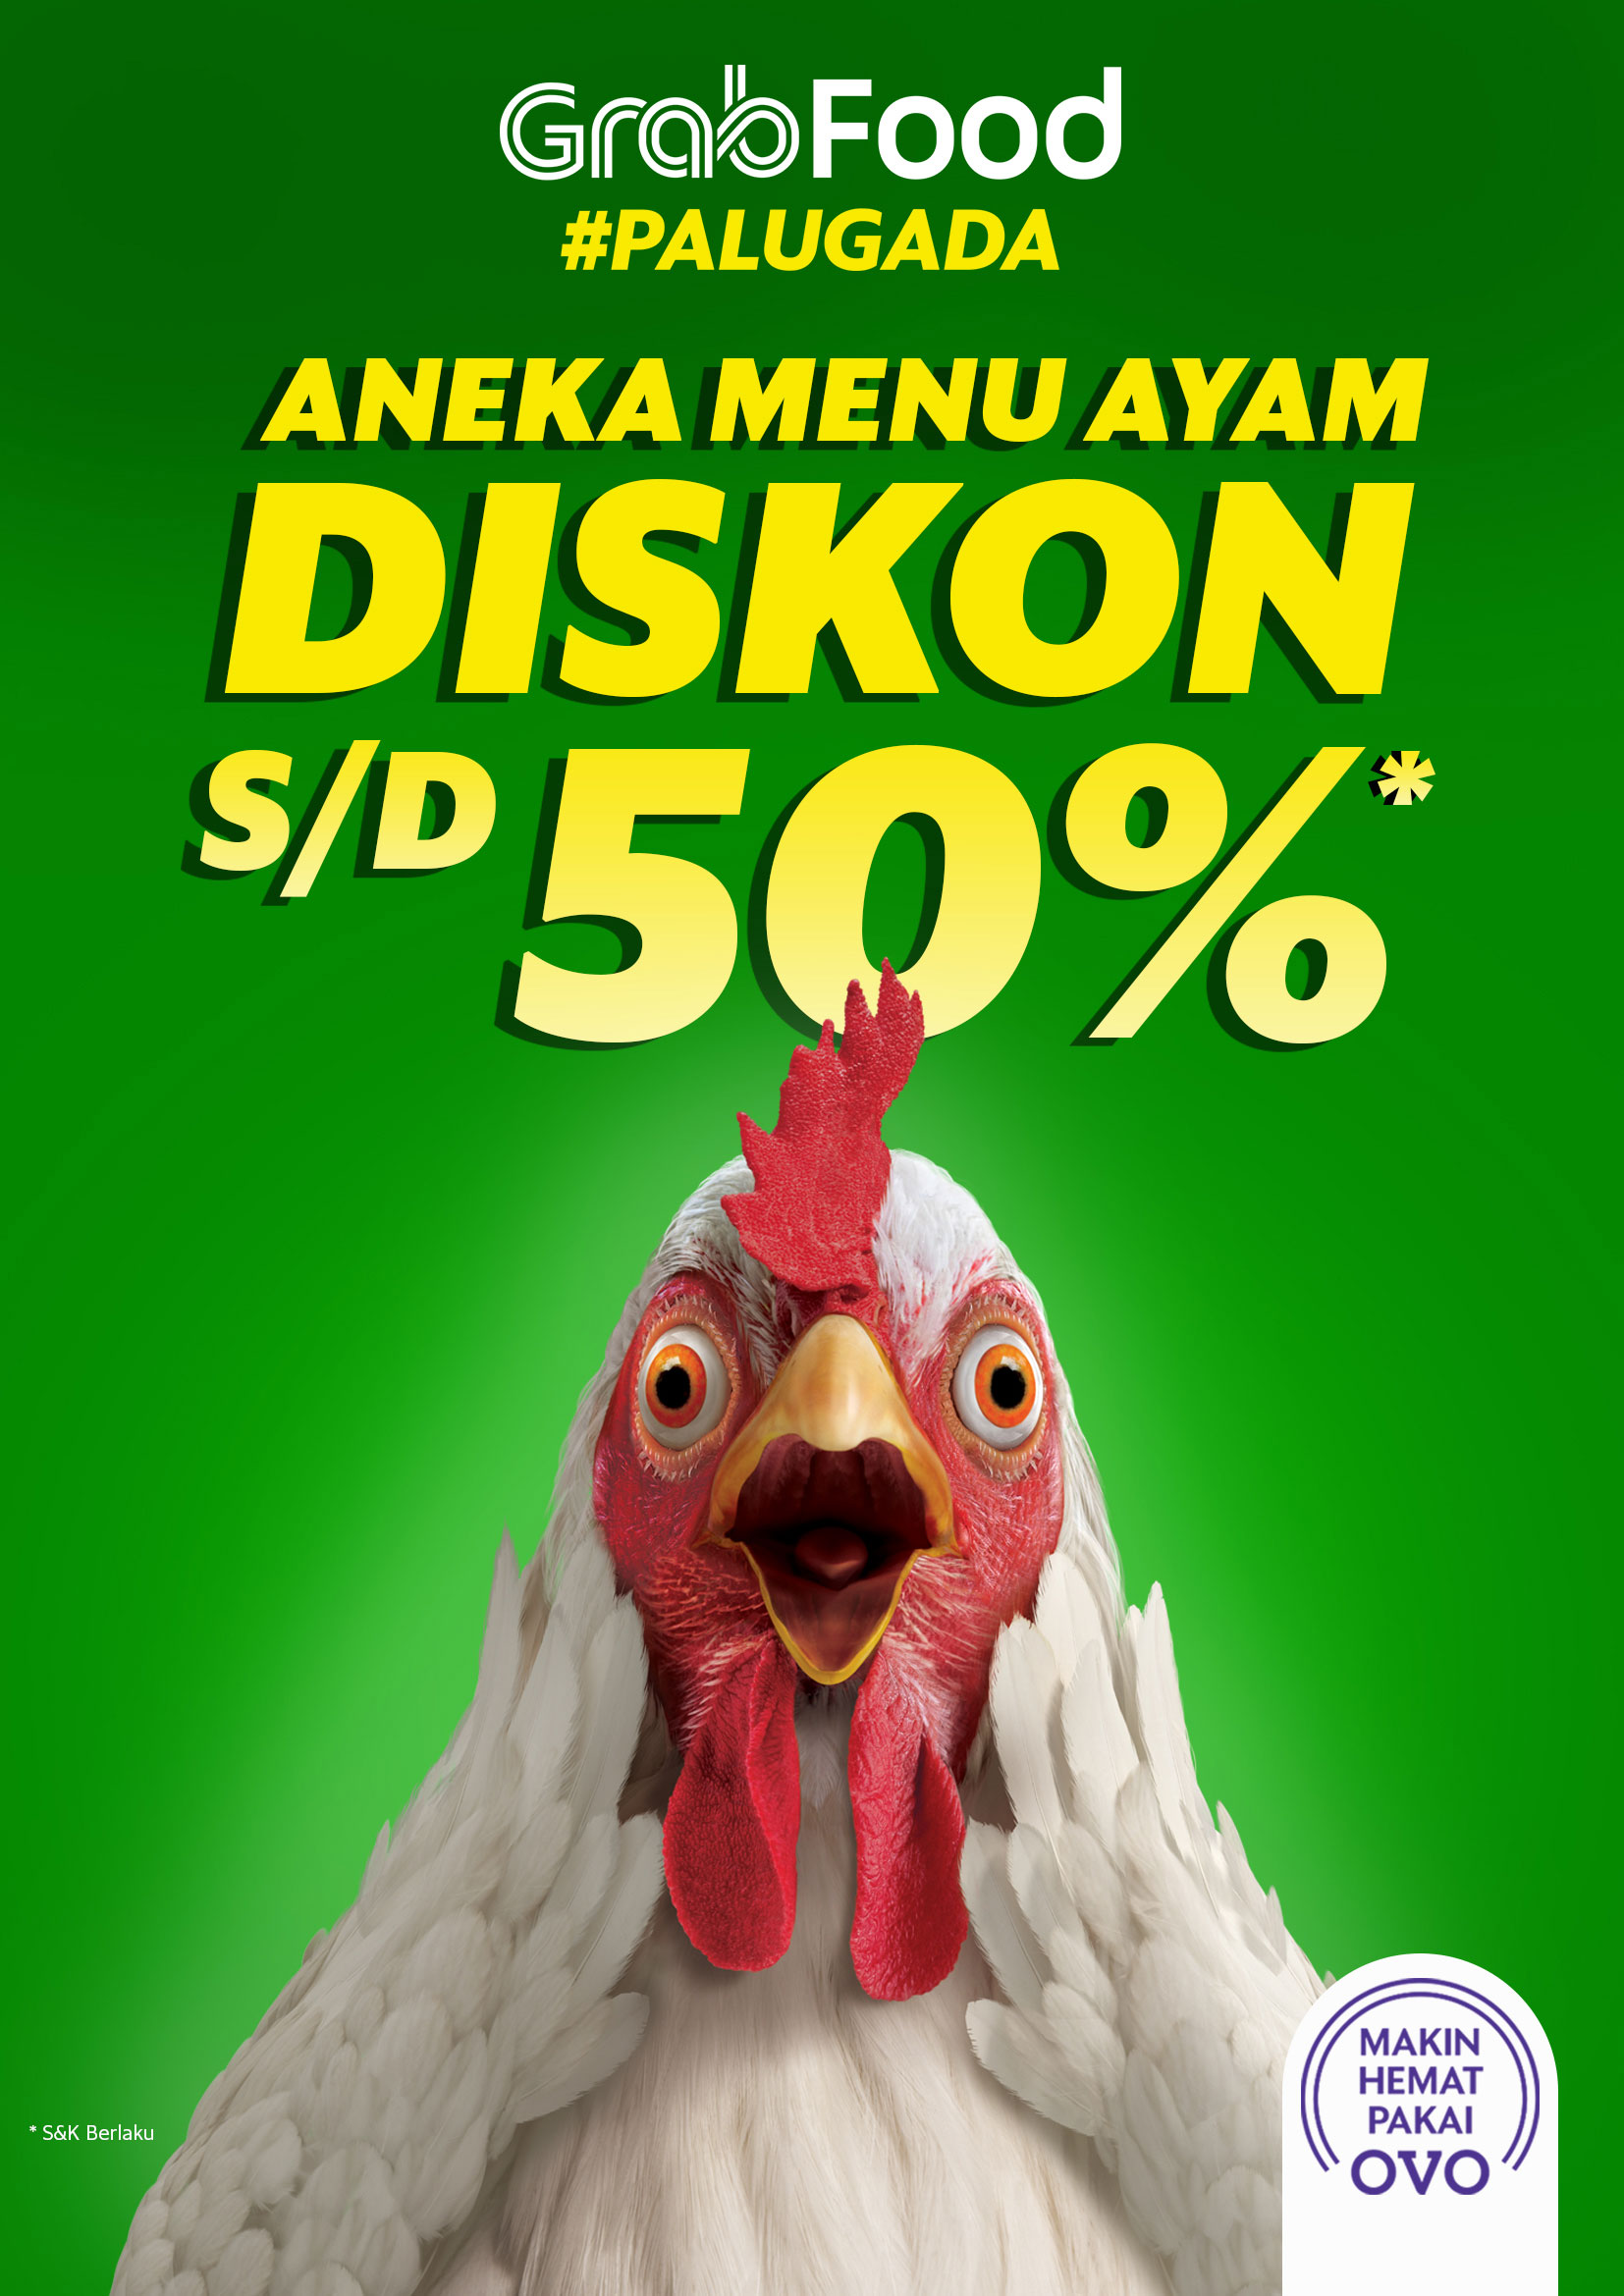 GF---Chicken-Promo---No-Merchant.jpg